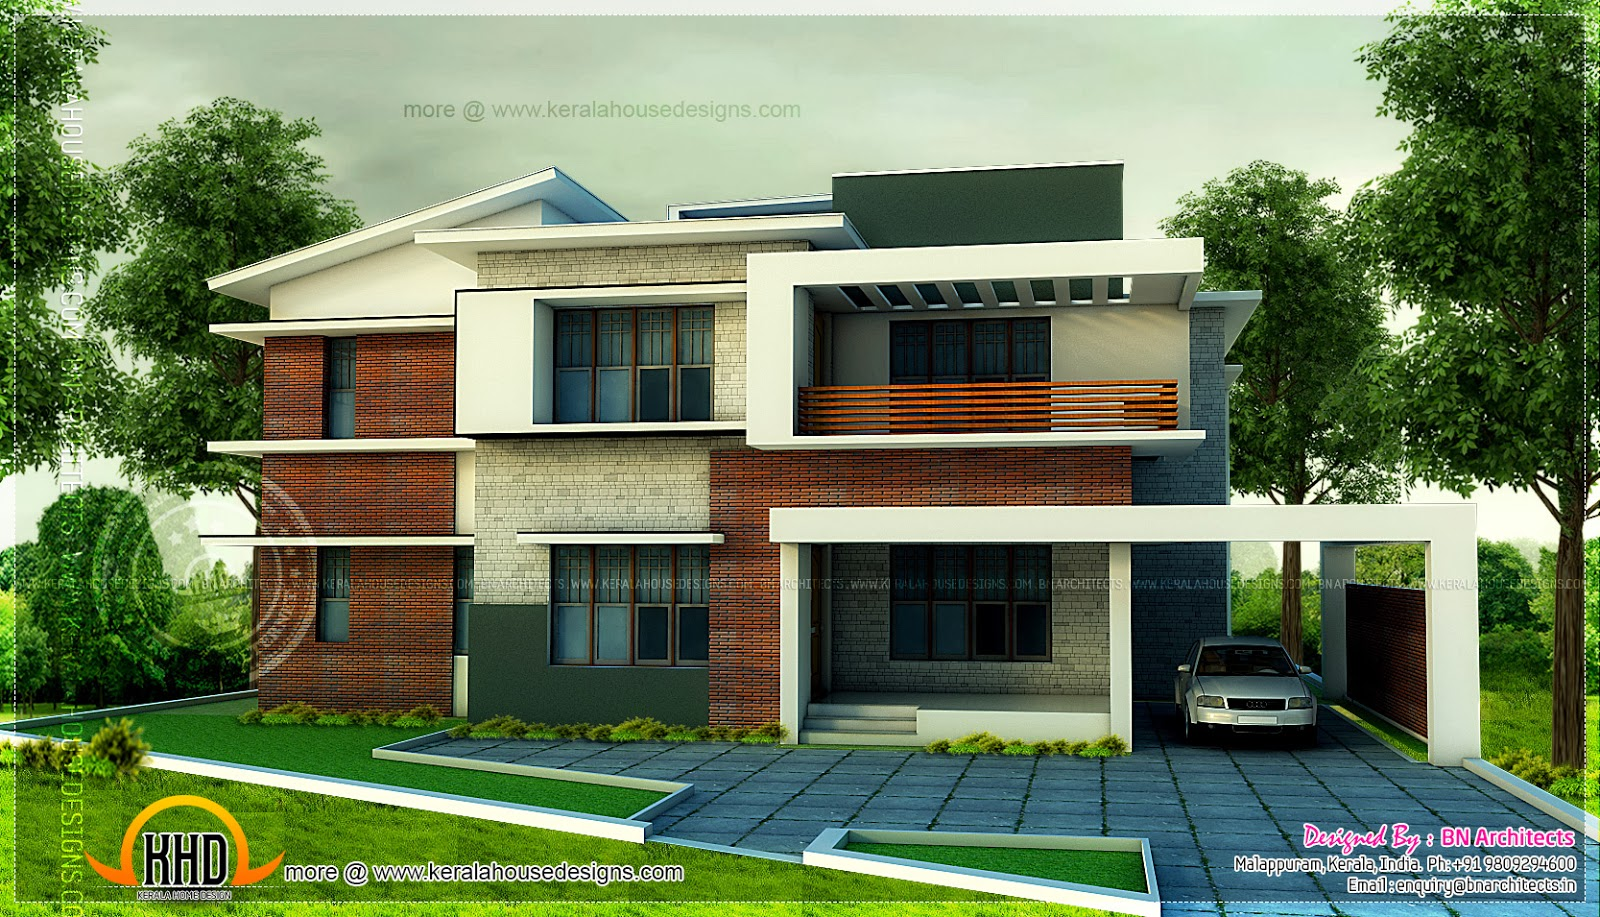 5 bedroom modern home in 3440 sq feet floor plan for House designs 7 bedrooms